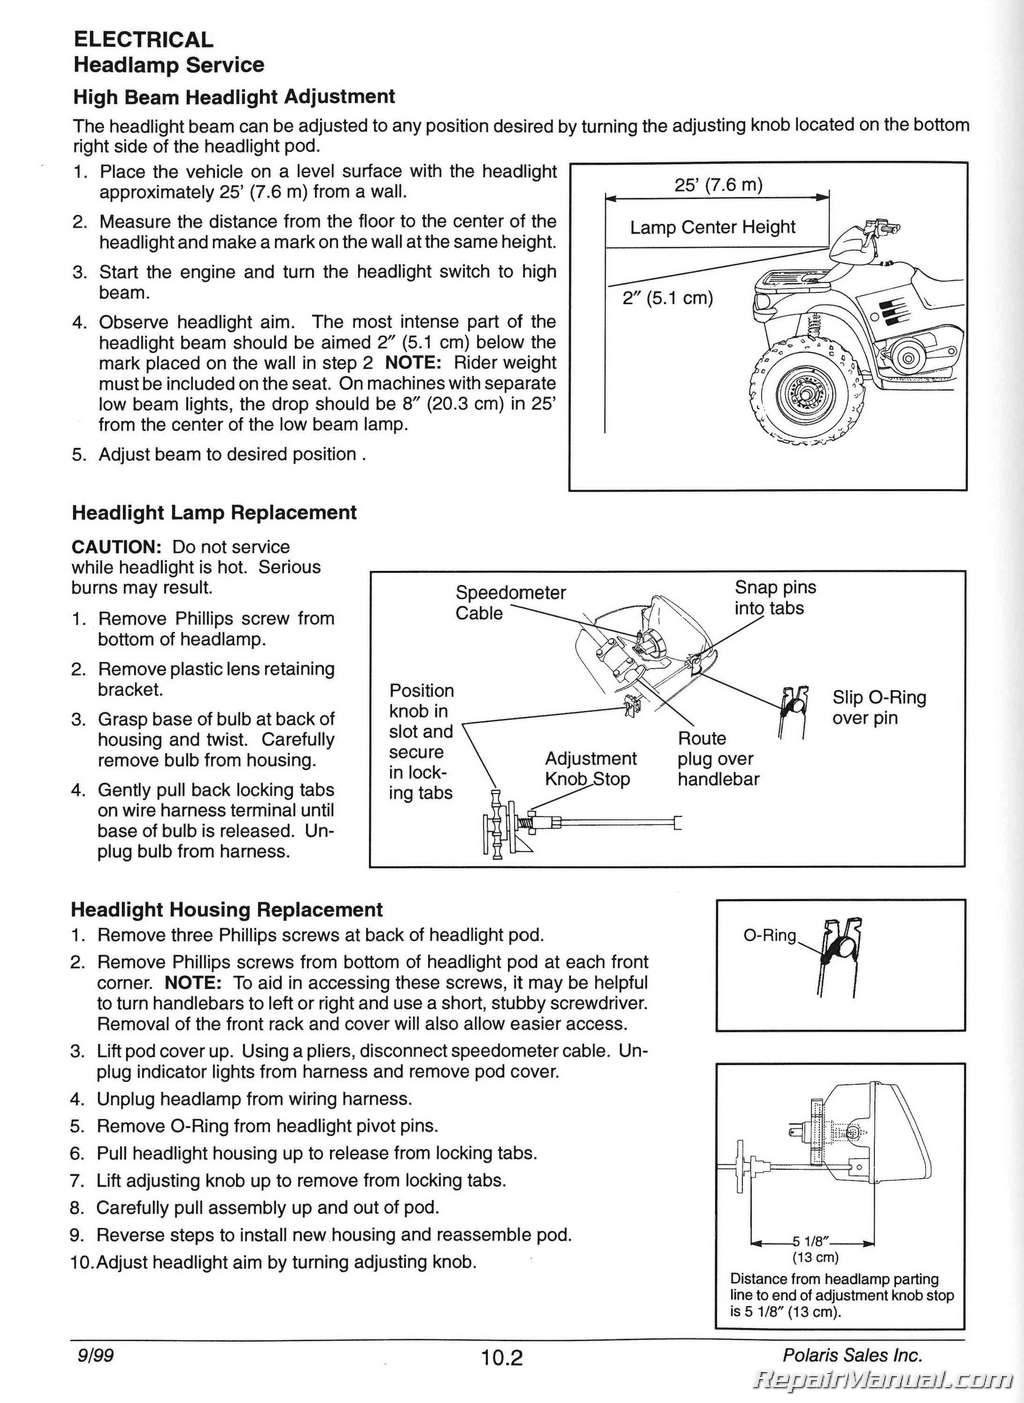 1996 2000 polaris sportsman 335 500 atv service manual 2004 polaris  sportsman 500 electrical diagram 2004 polaris sportsman 500 ho wiring  diagram pdf